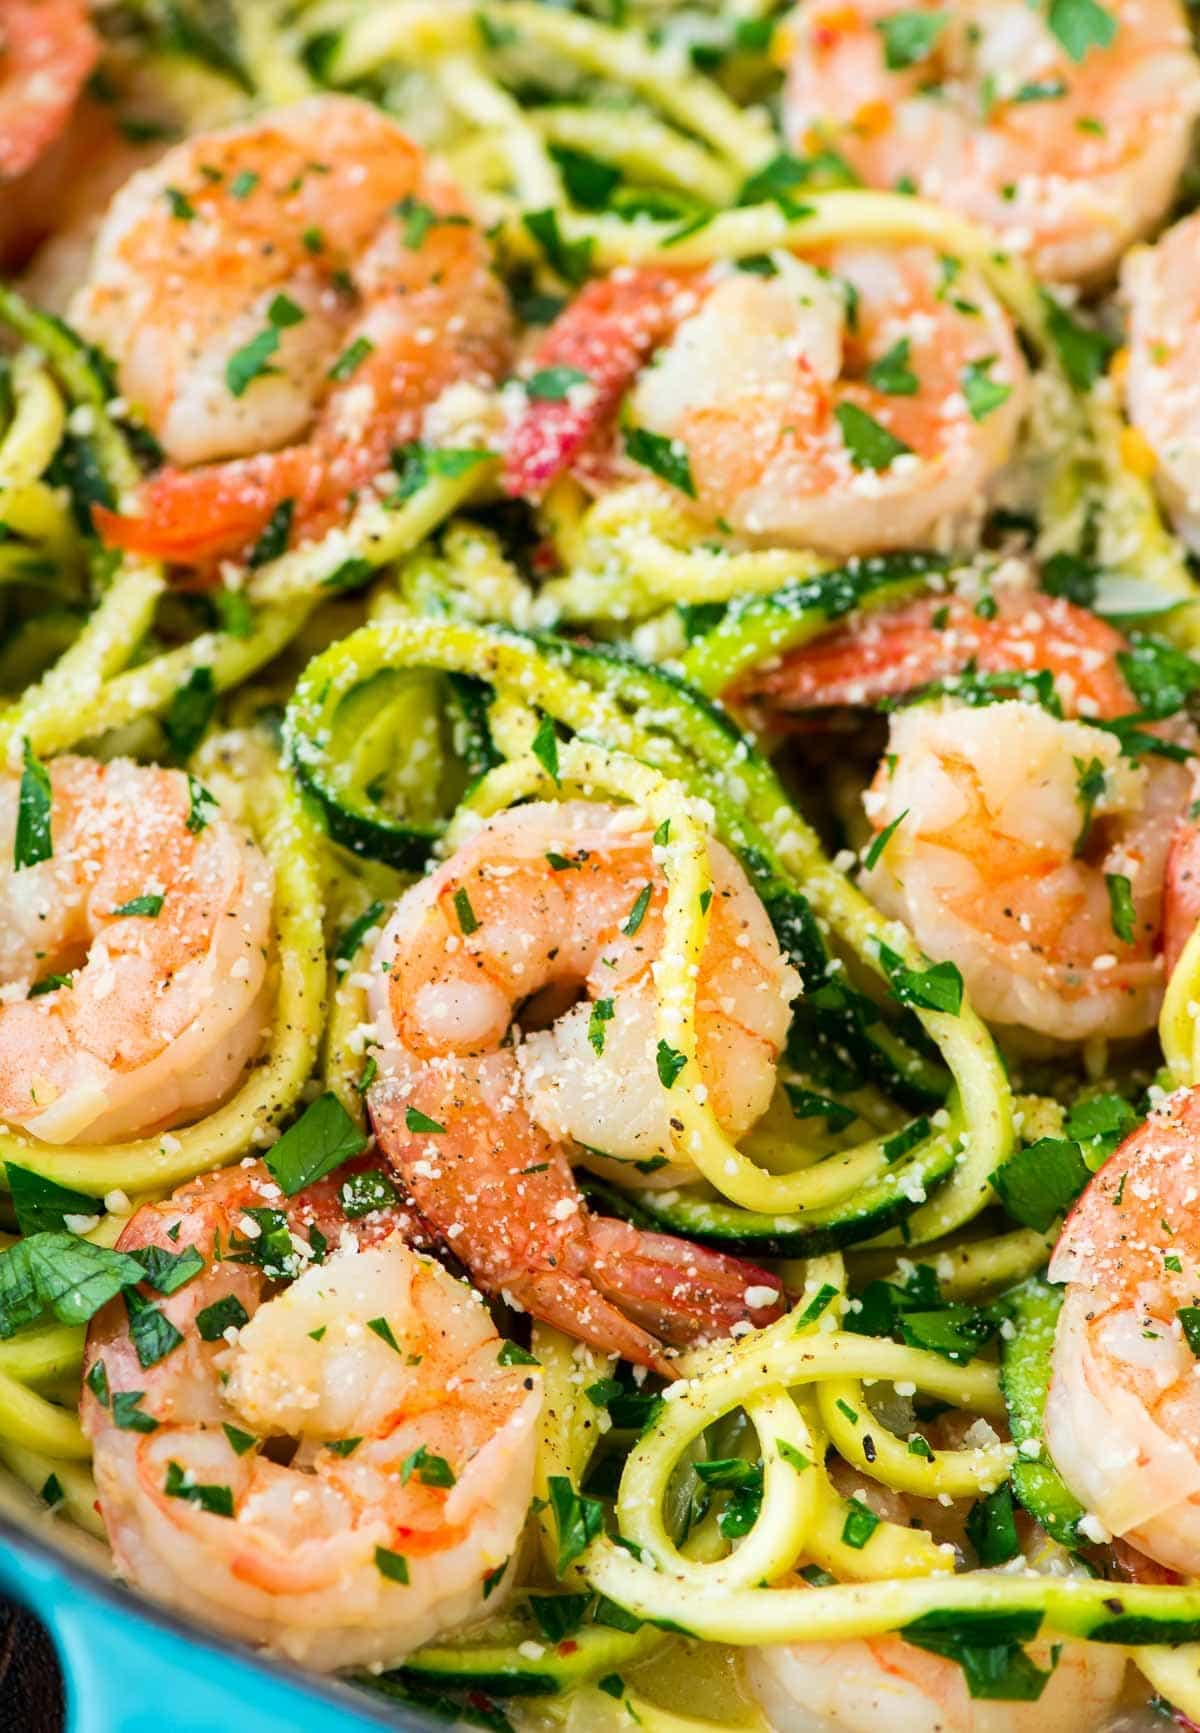 Skinny Shrimp Scampi with Zucchini Noodles. Easy, low carb version of the classic pasta dish that can be made without wine. Recipe at wellplated.com | @wellplated